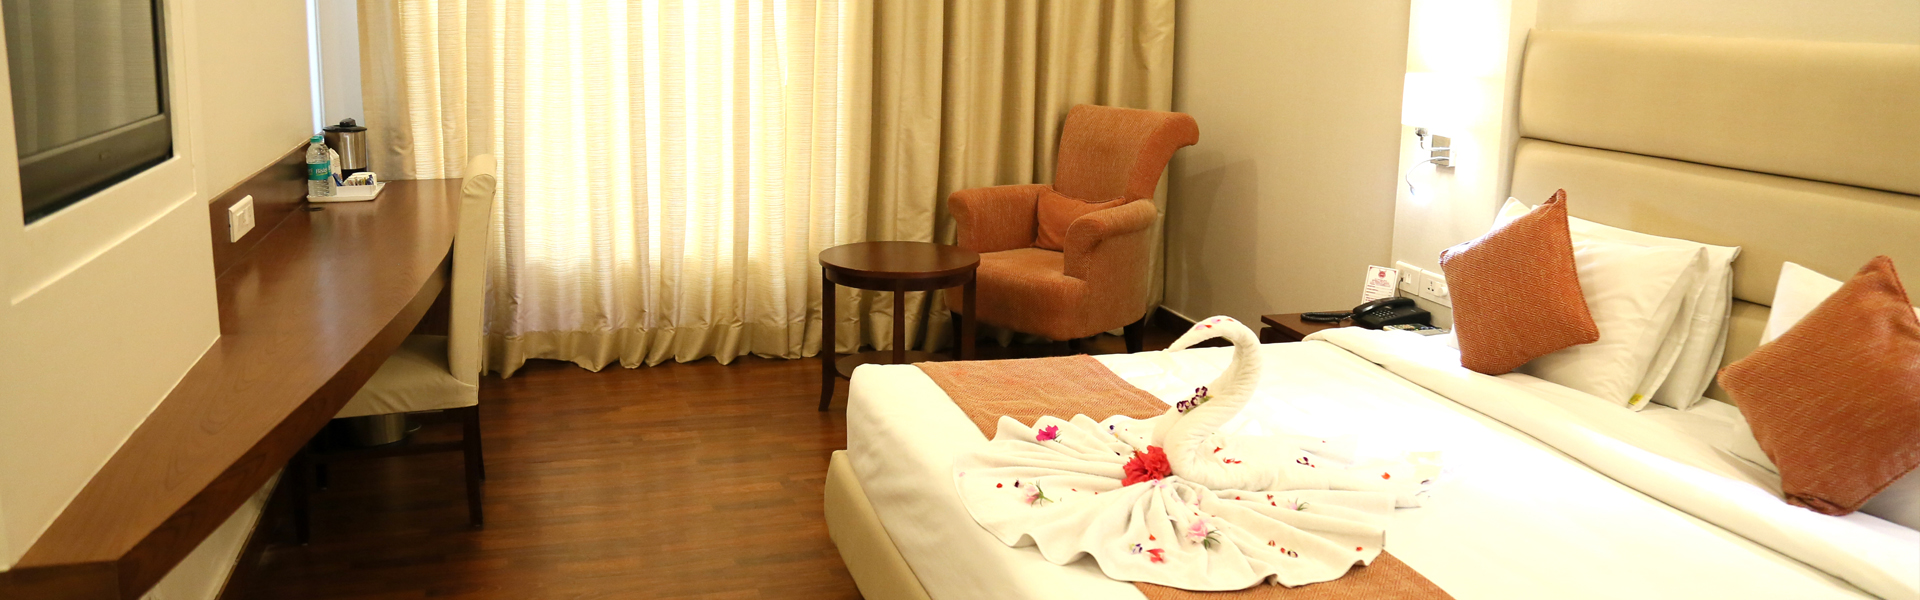 Luxury Hotel Rooms in Dehradun at MJ Residency